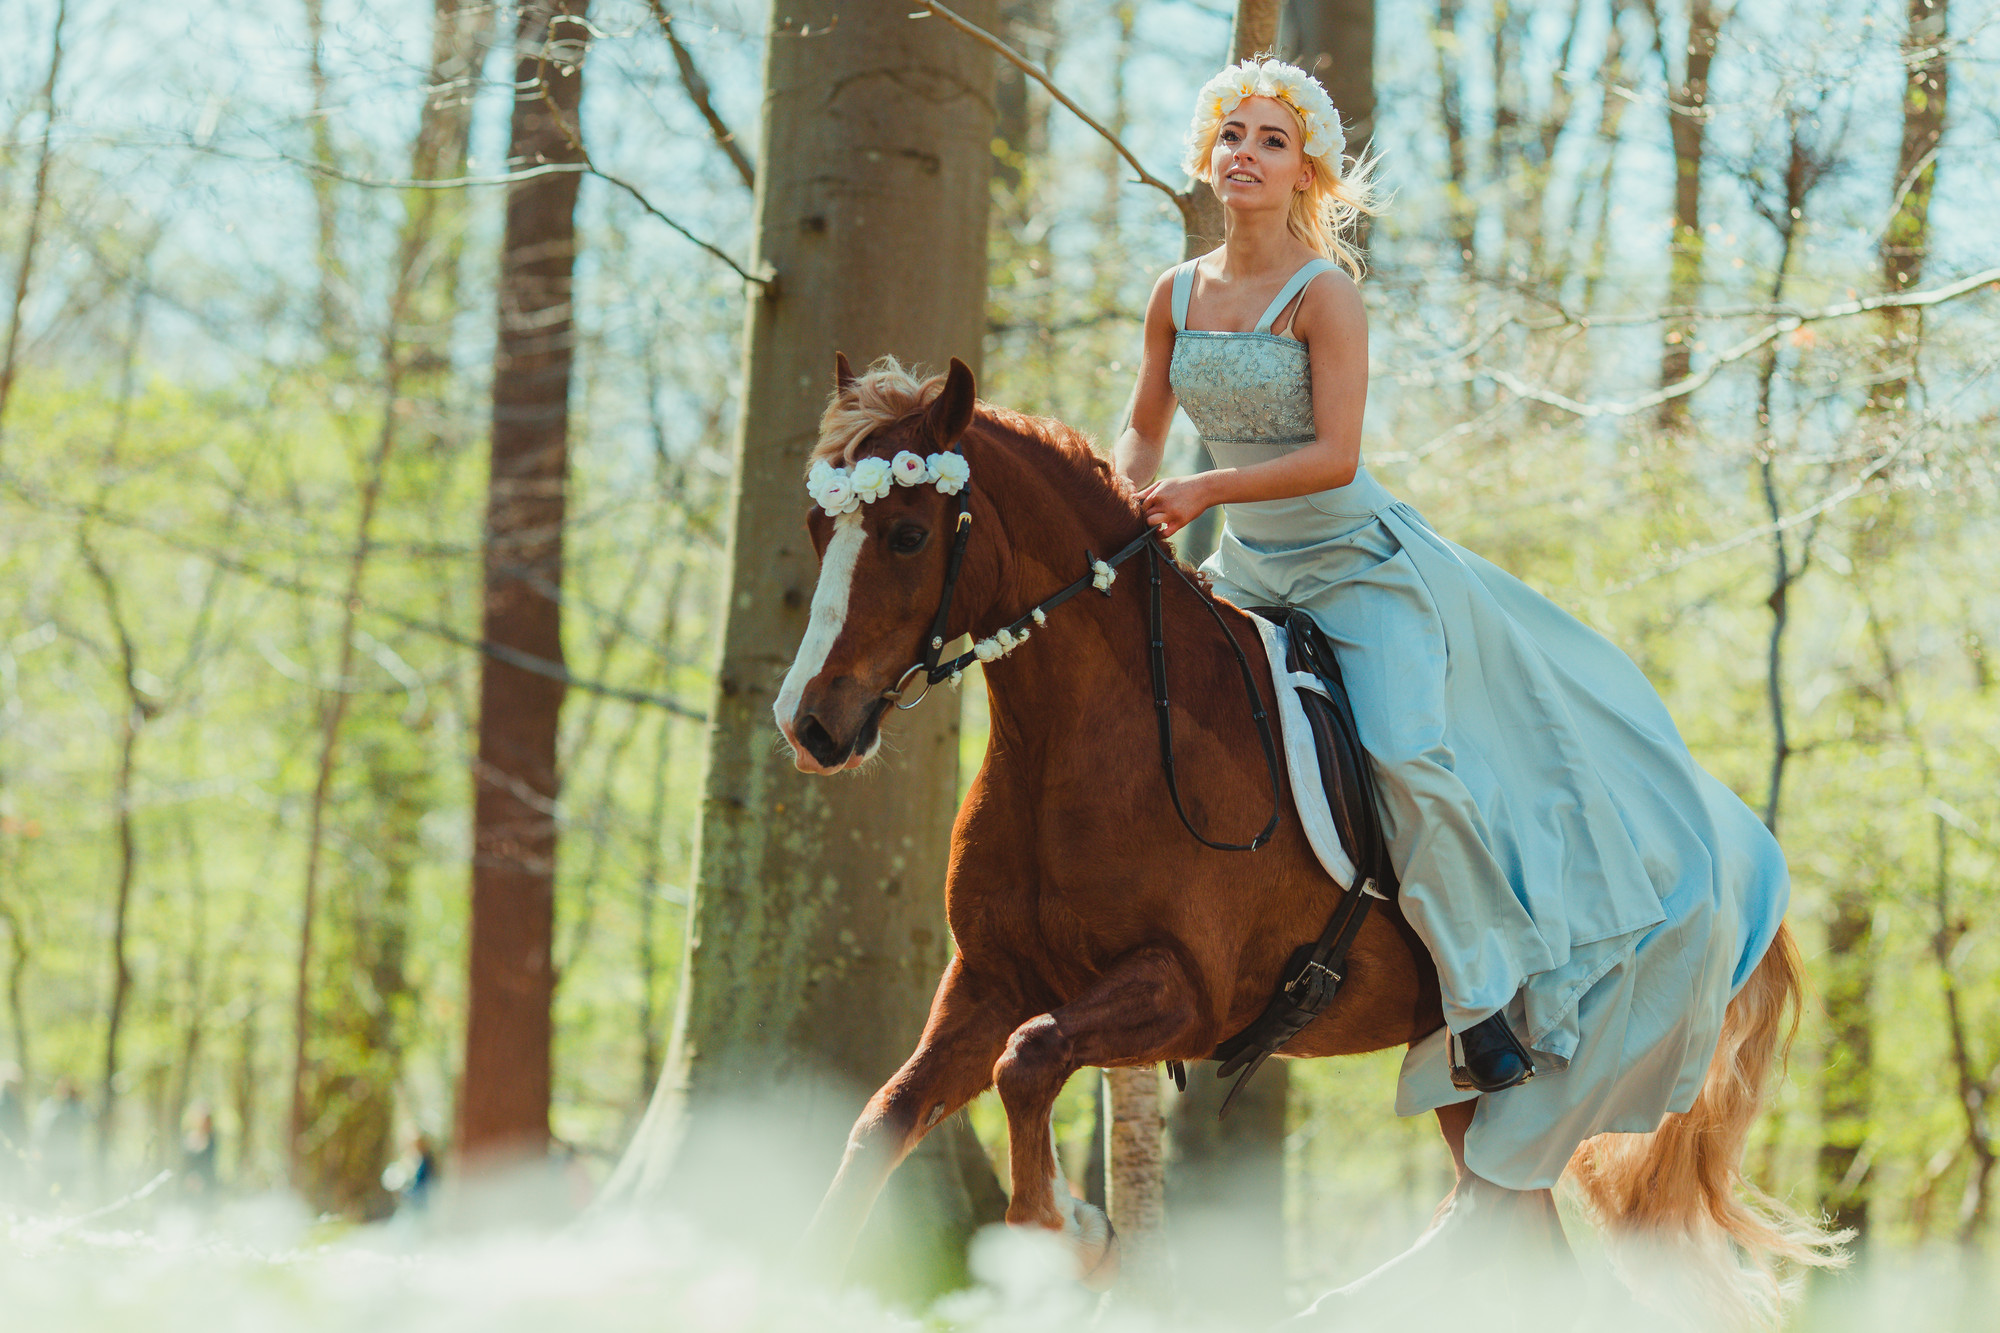 fairytale-horse-photography-cecilie-thorud08